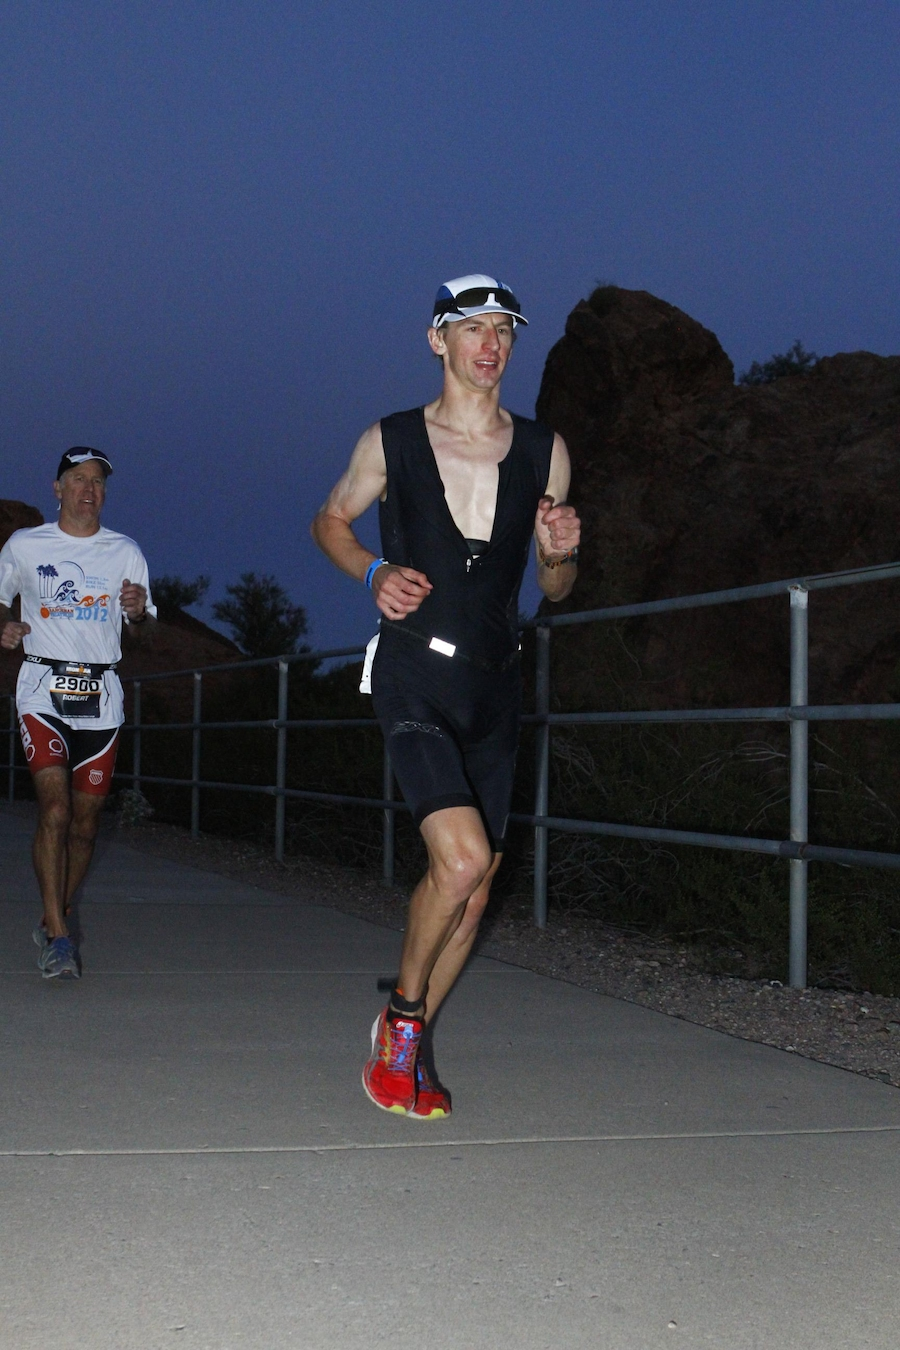 greg_kroleski_ironman_arizona_run_dark